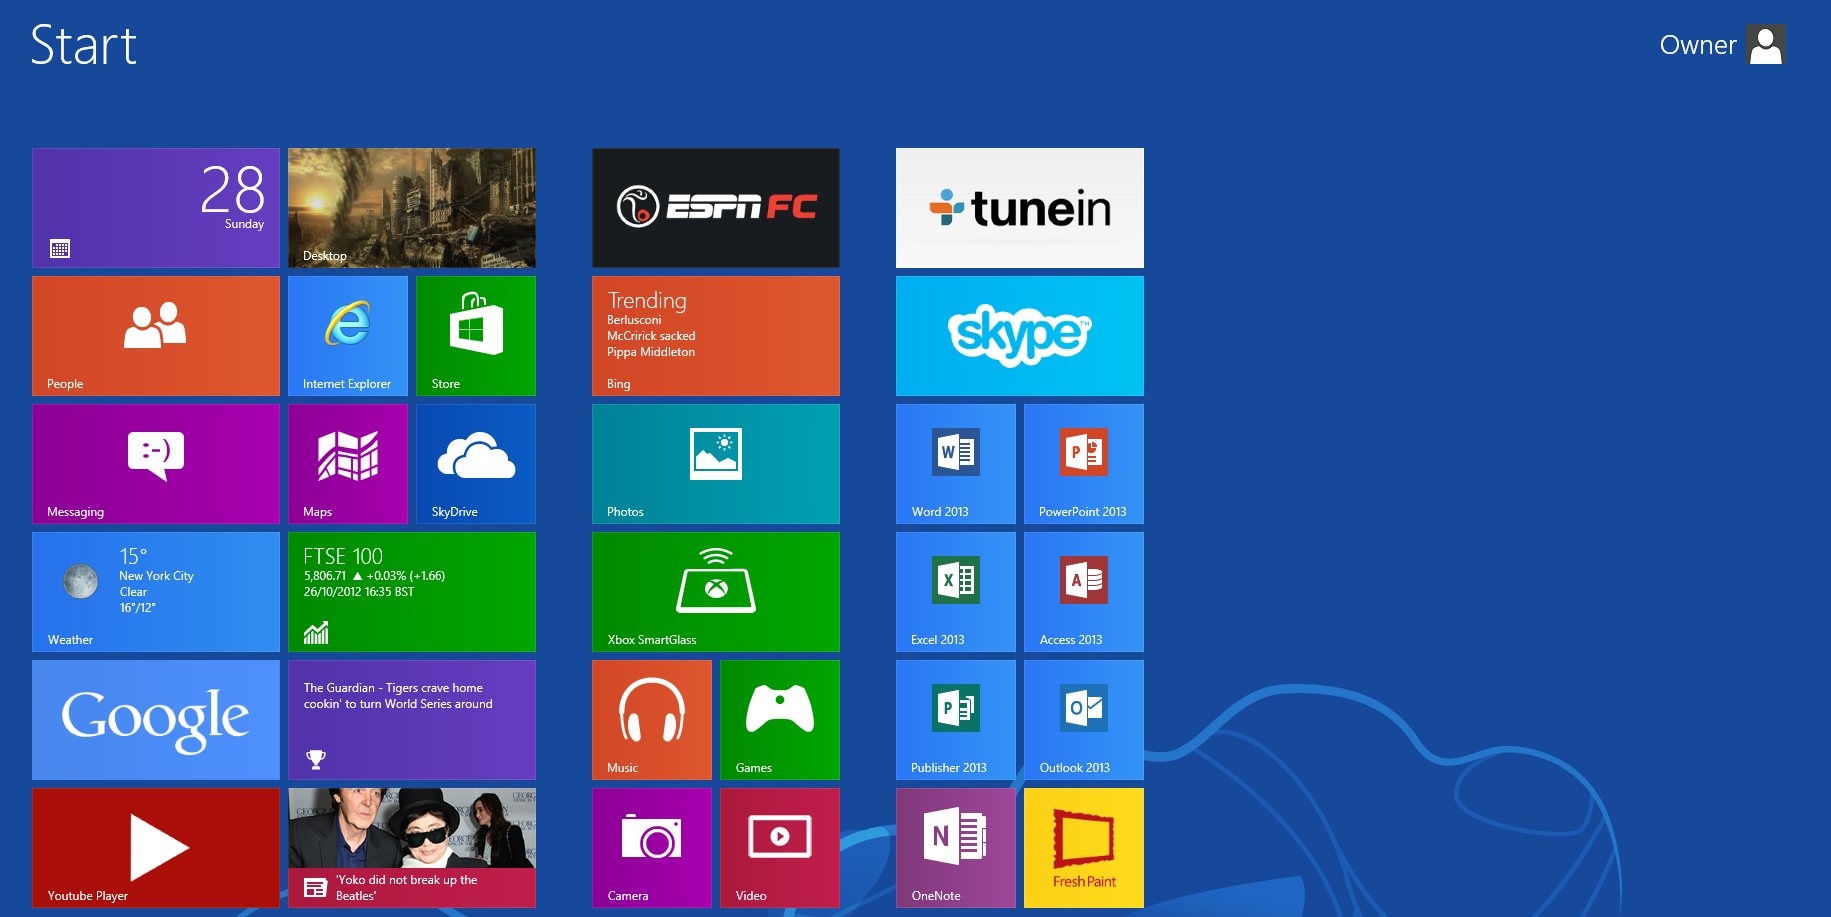 Differences between Windows RT and Windows 8